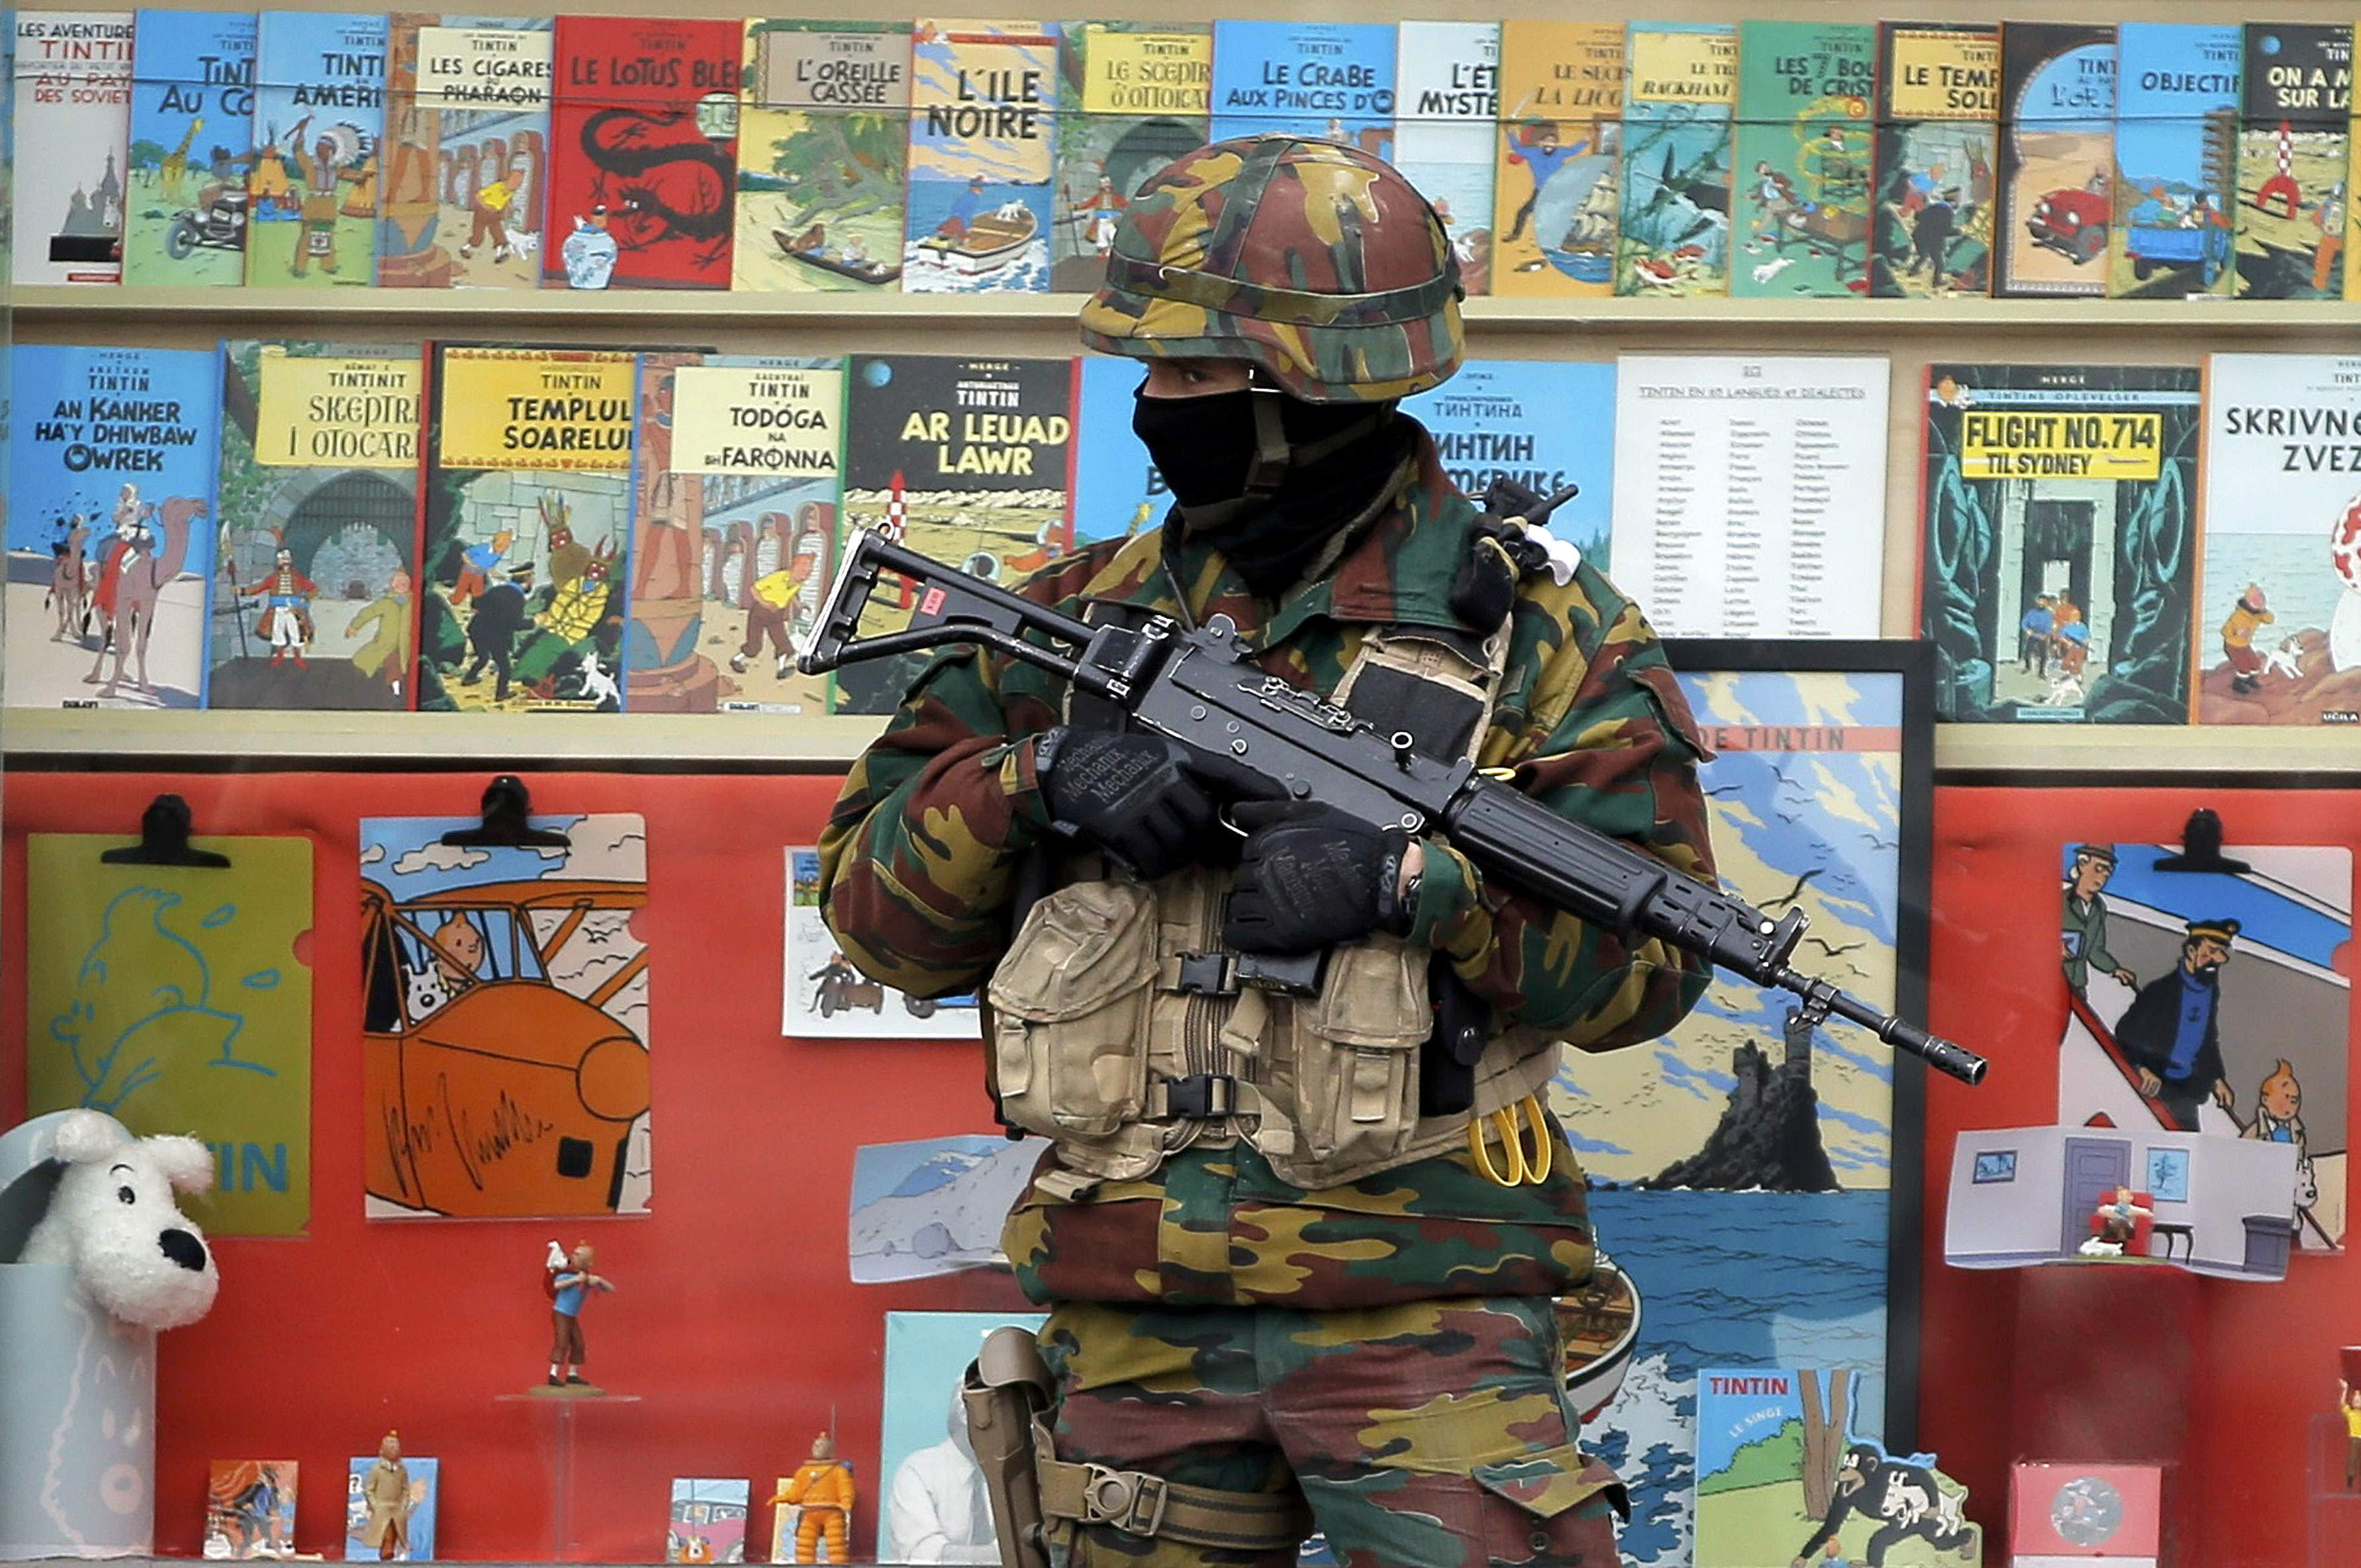 A Belgian soldier stands guard in front of a shop selling Tintin comic books in central Brusselss, Belgium, March 24, 2016. REUTERS/Vincent Kessler TPX IMAGES OF THE DAY